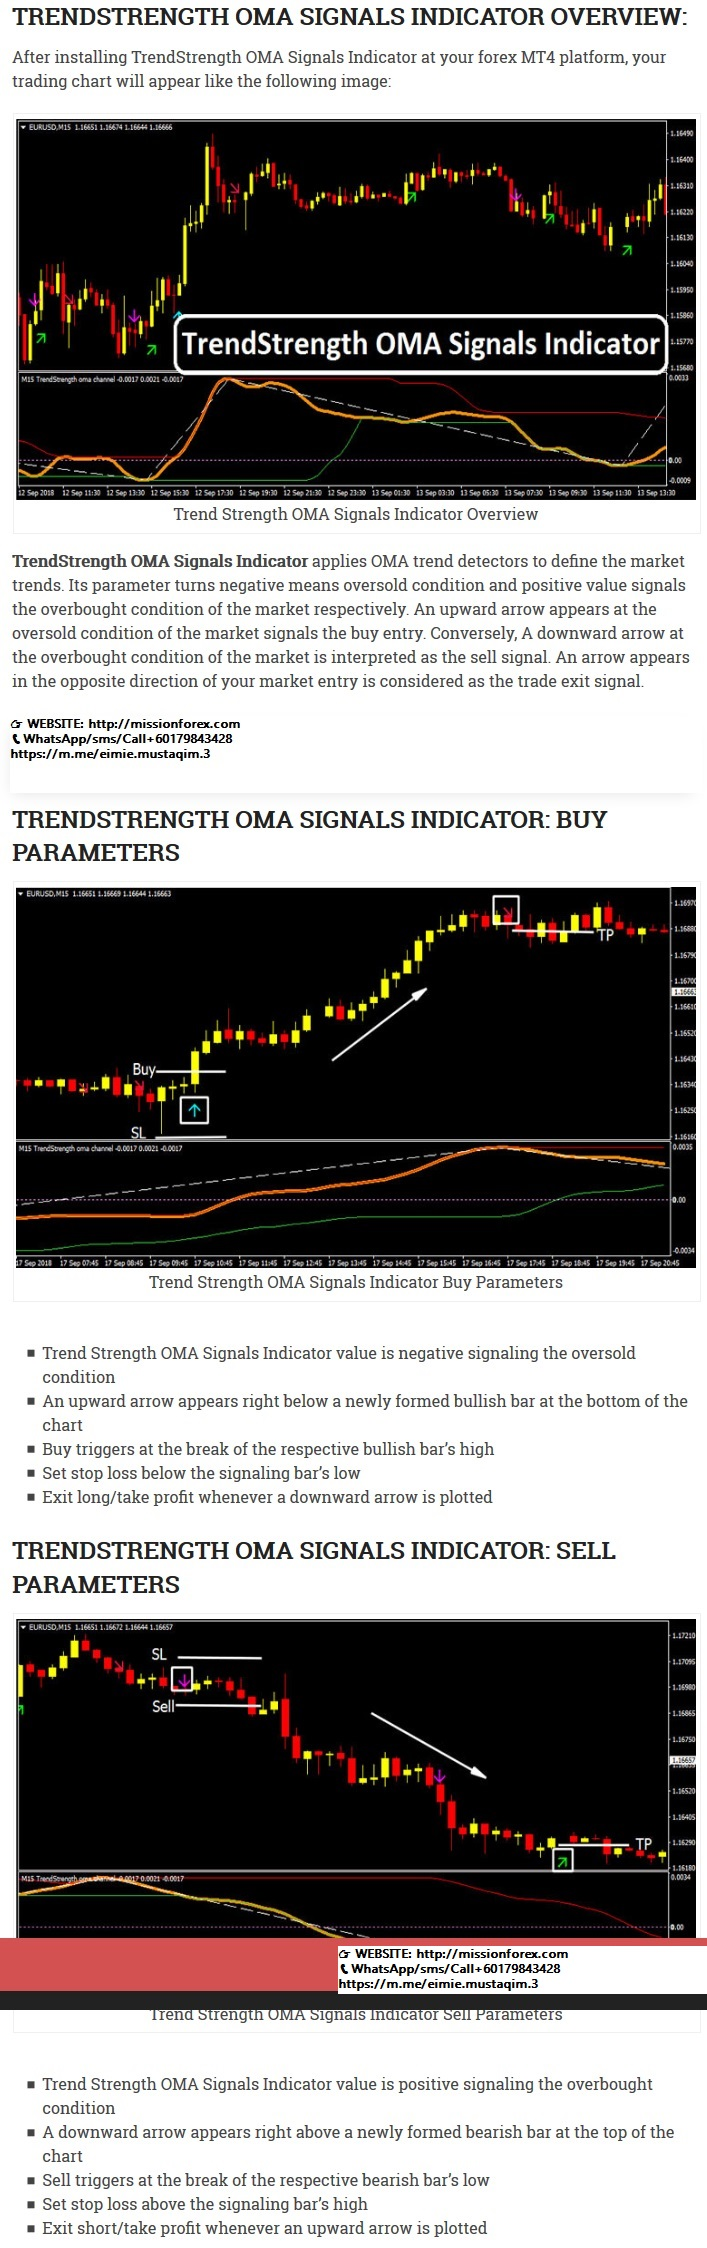 Trend Strength oma signals indicator